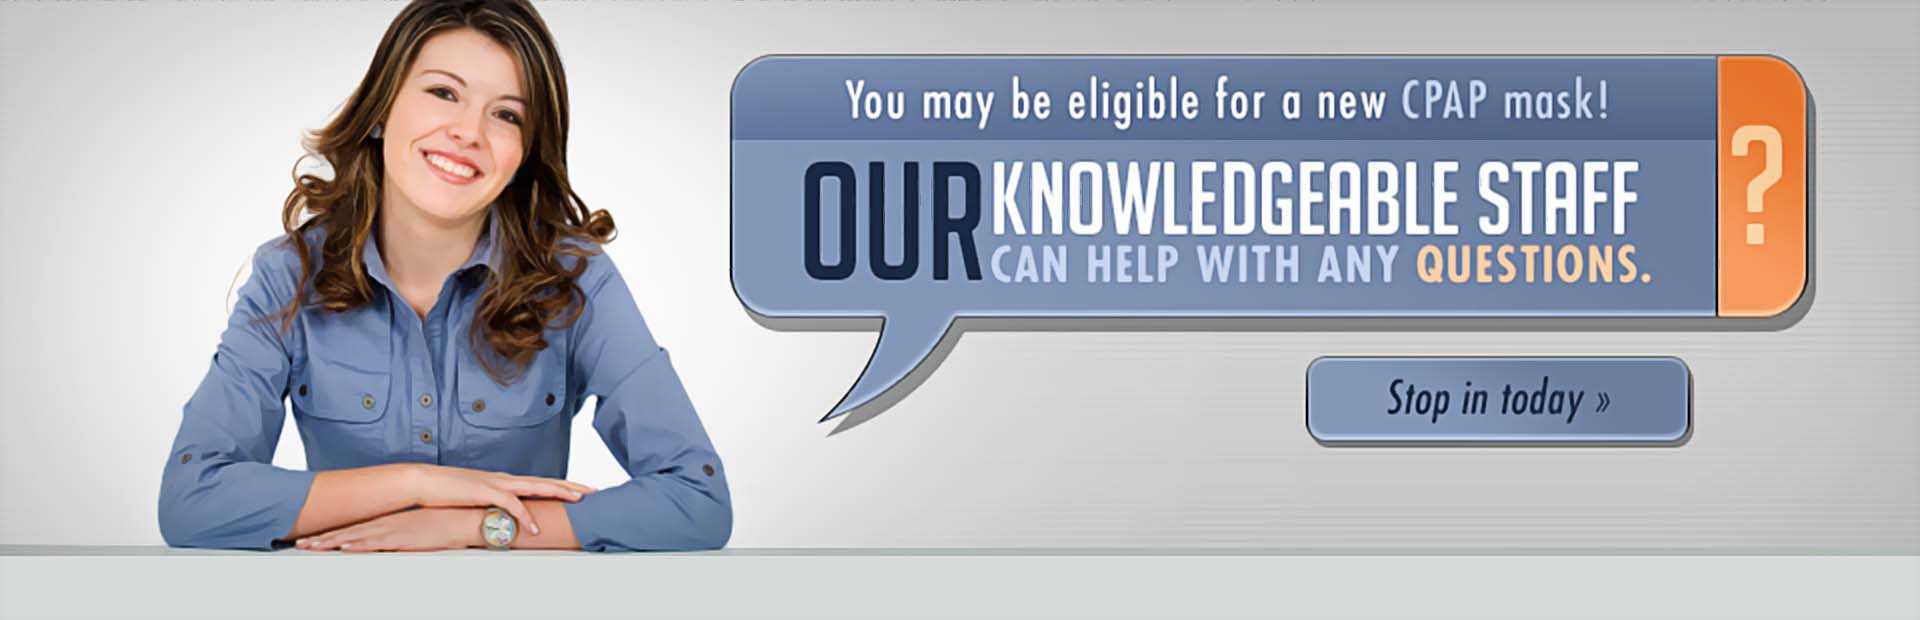 You may be eligible for a new CPAP mask! Click here to contact us.